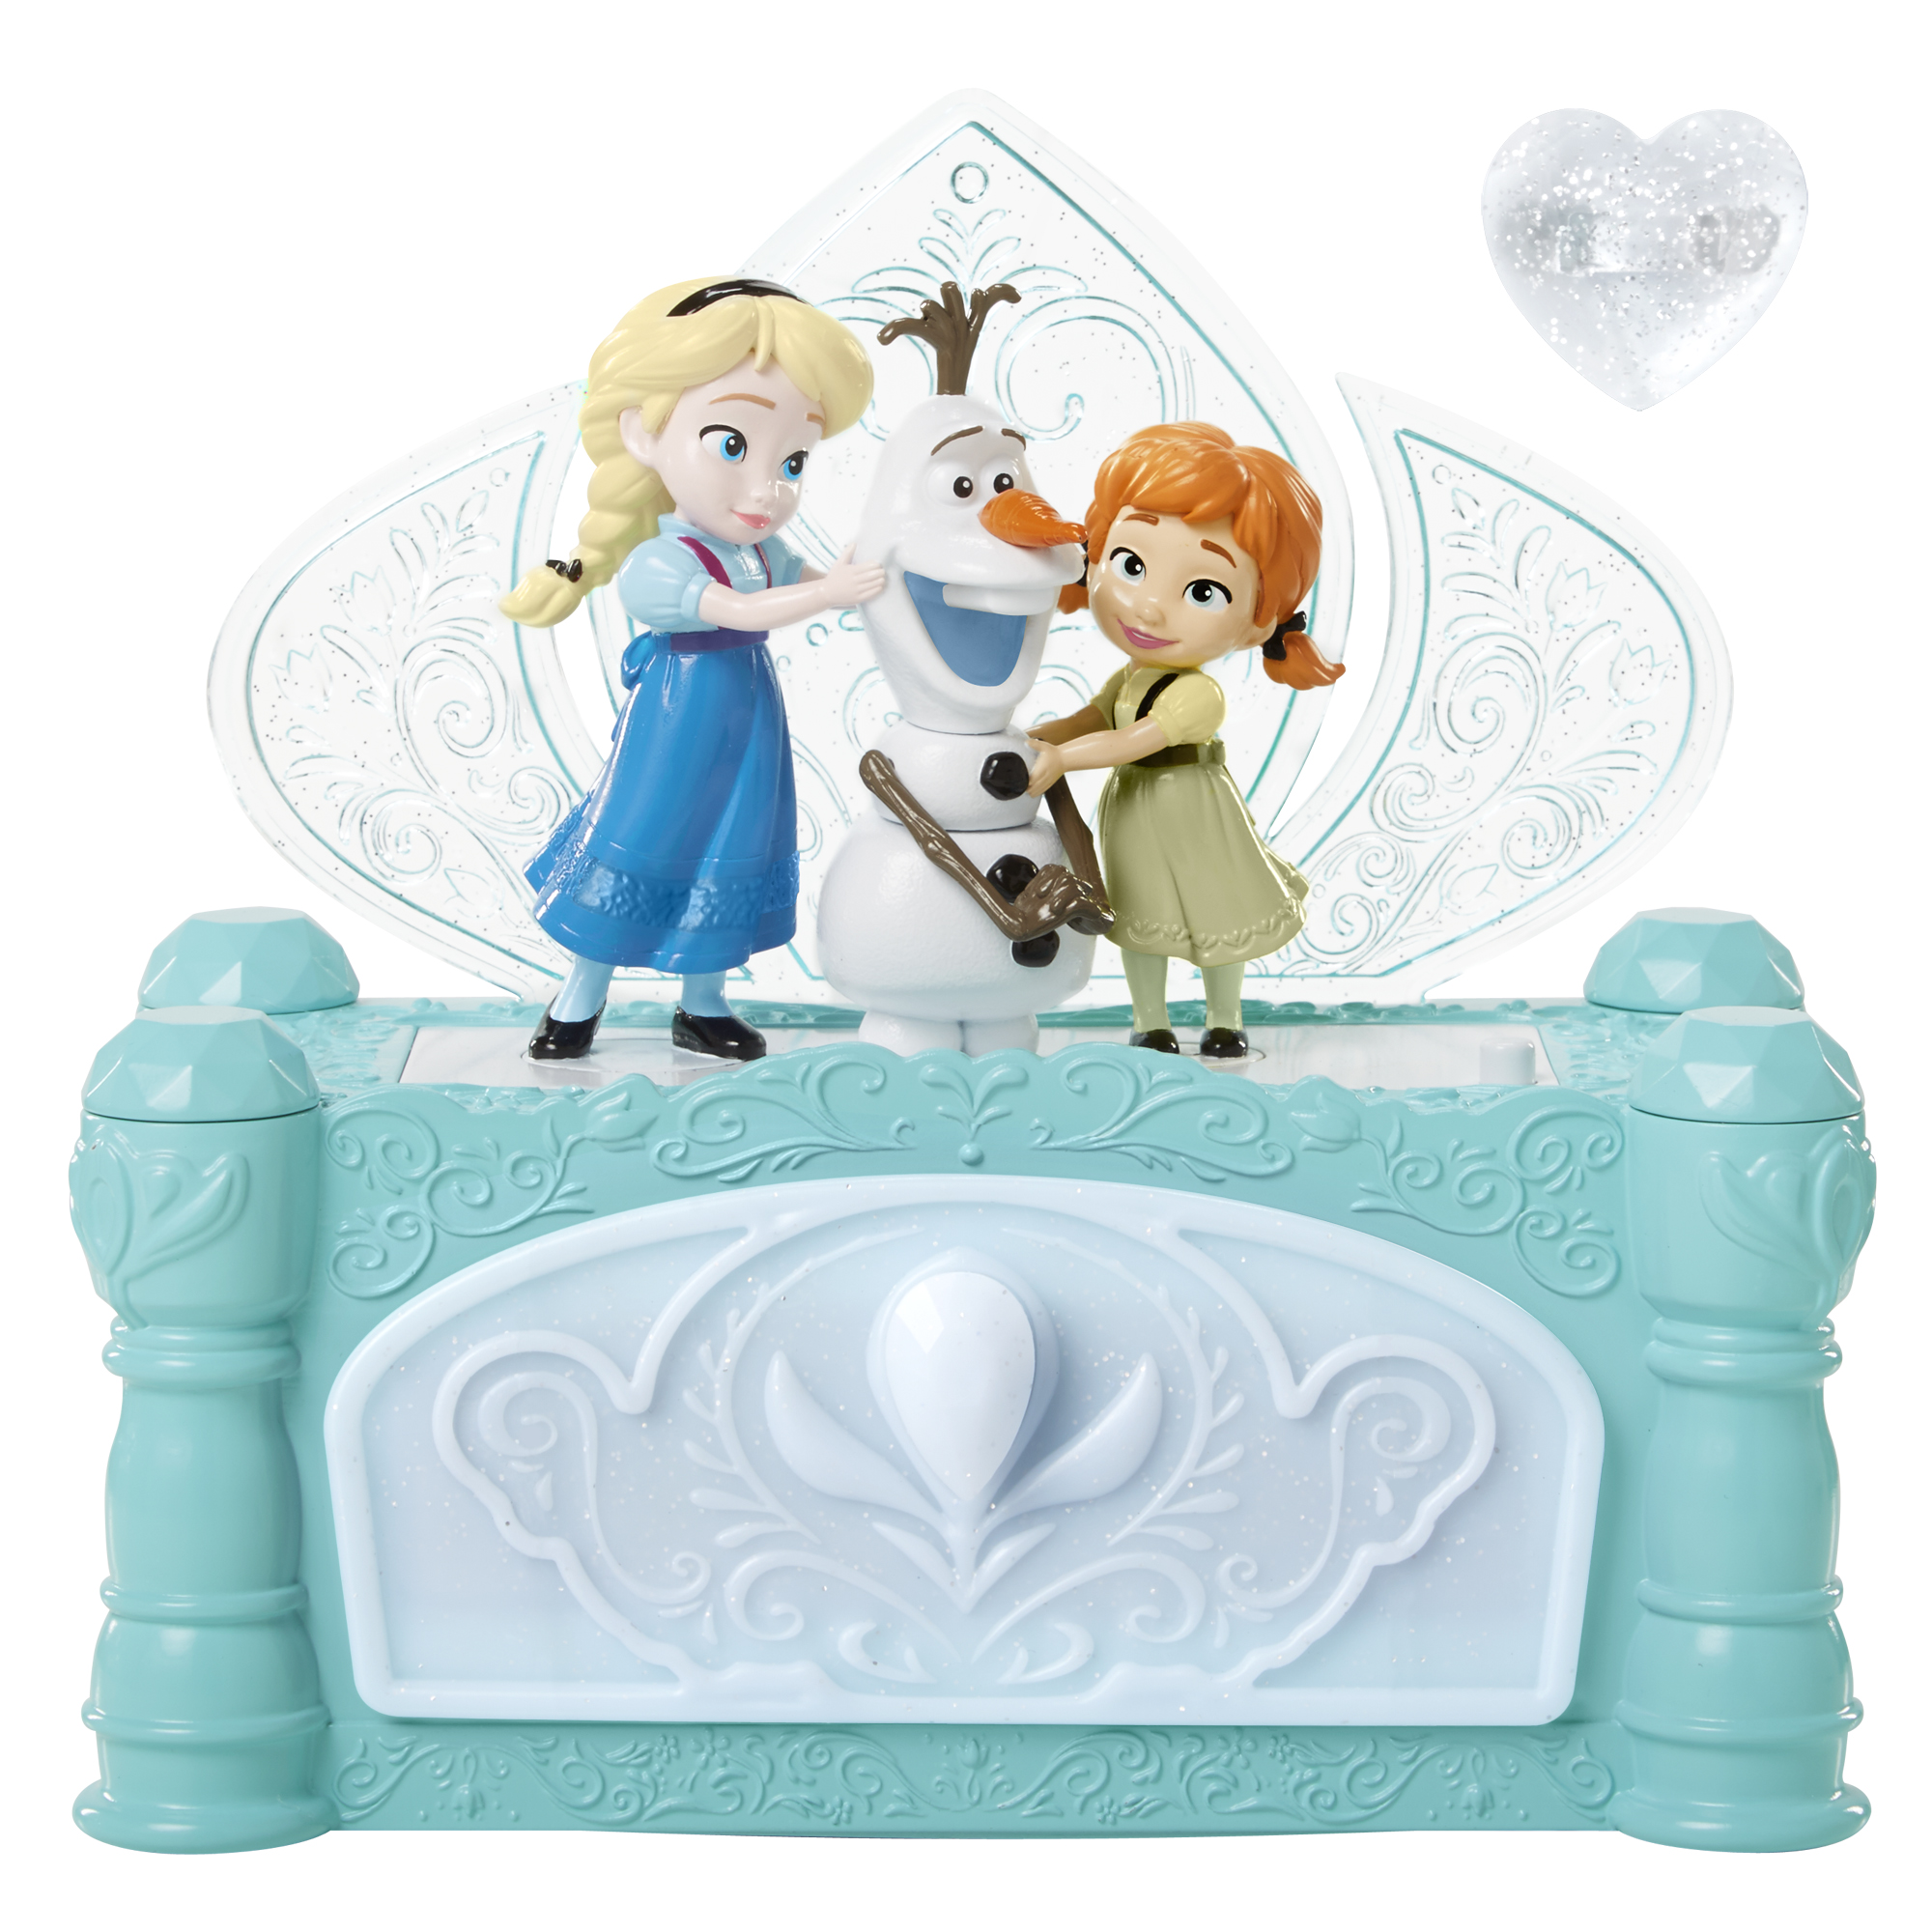 """Do You Want to Build a Snowman"" Jewelry Box Disney Frozen"